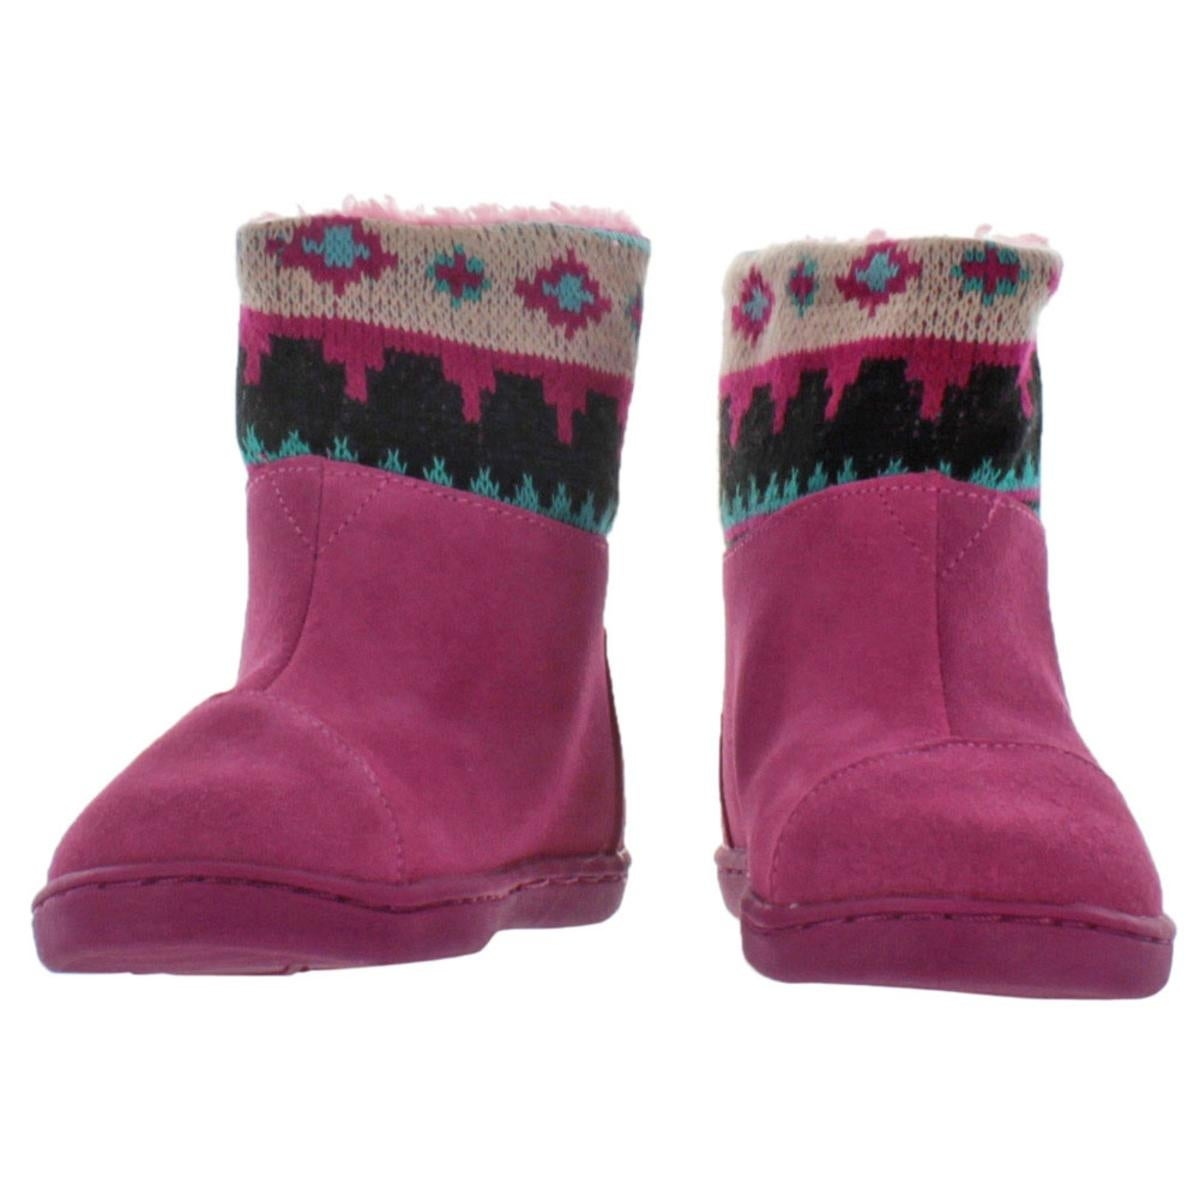 Toms Girls Nepal Boot Winter Boots Suede Knit Trim